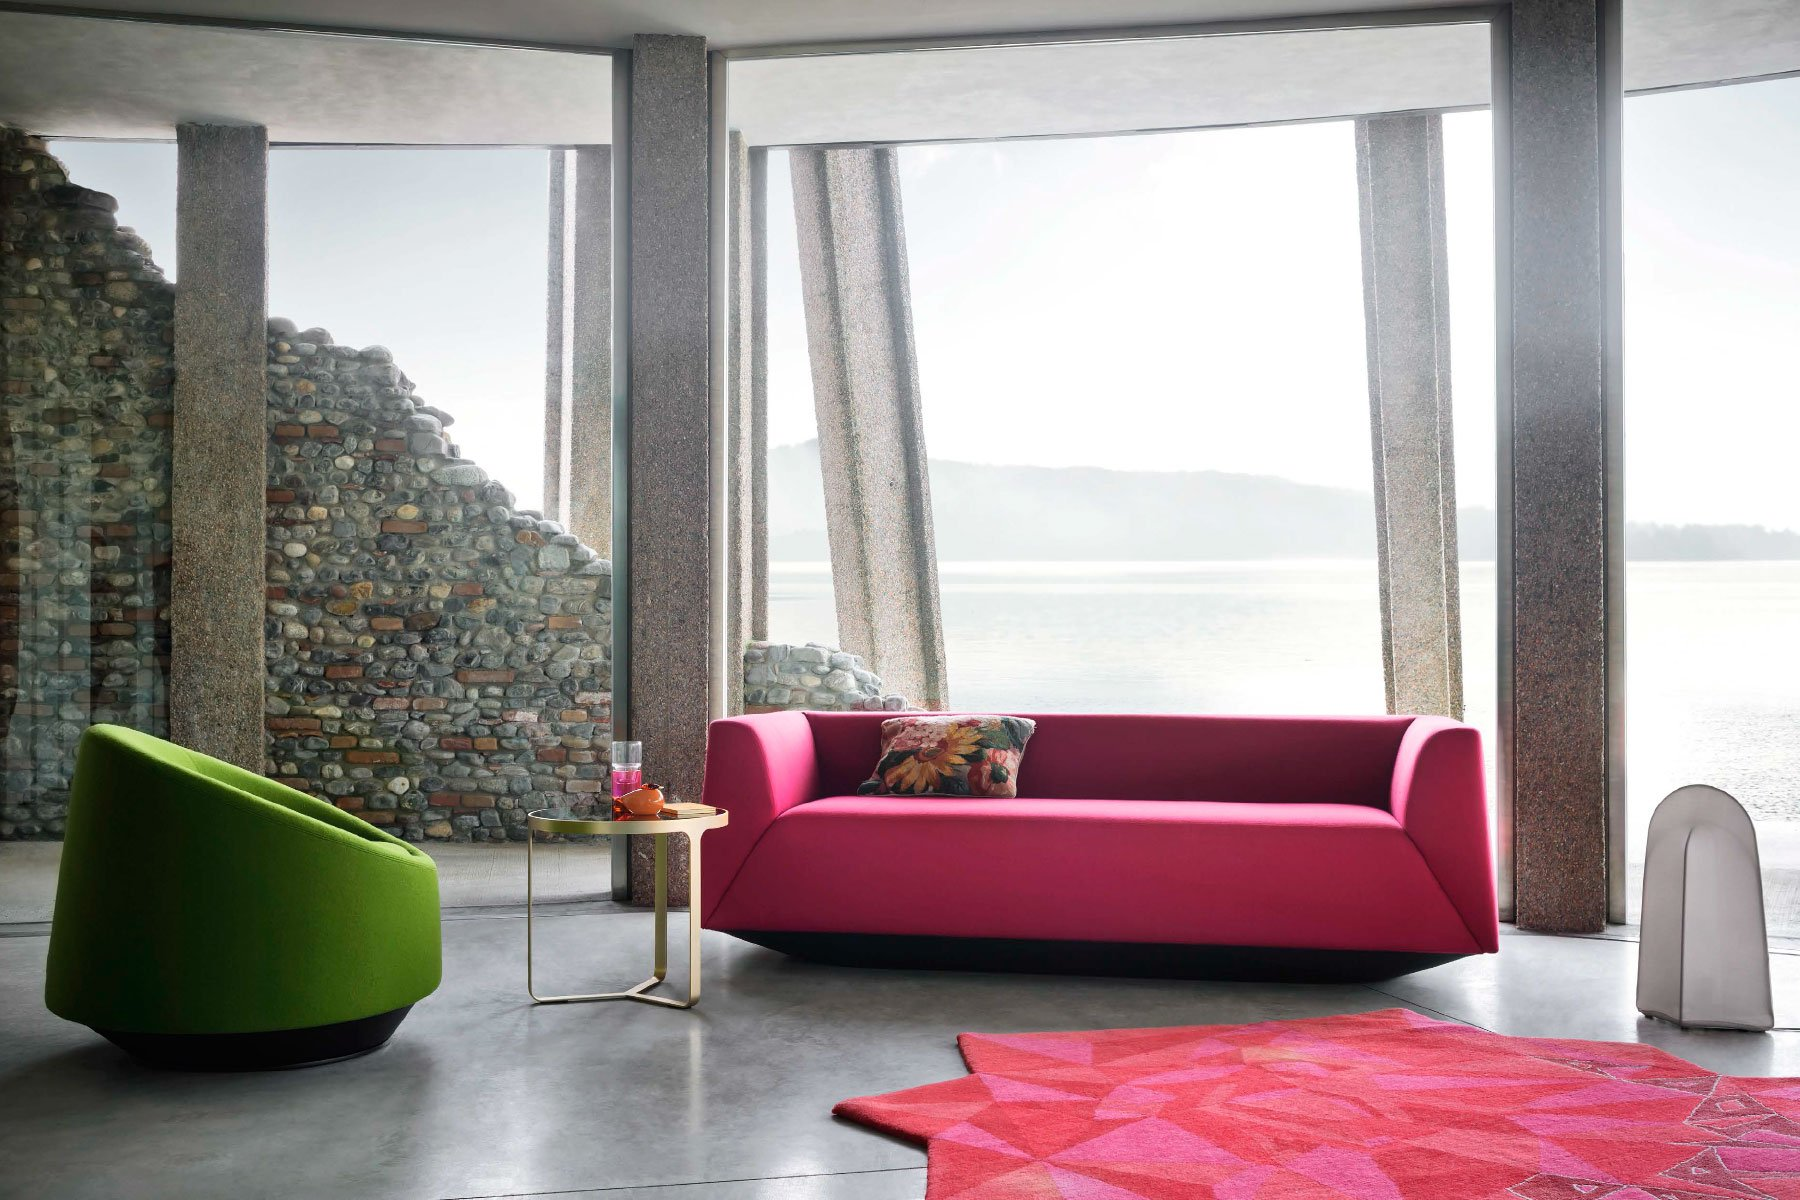 Crystal Sofa from Tacchini